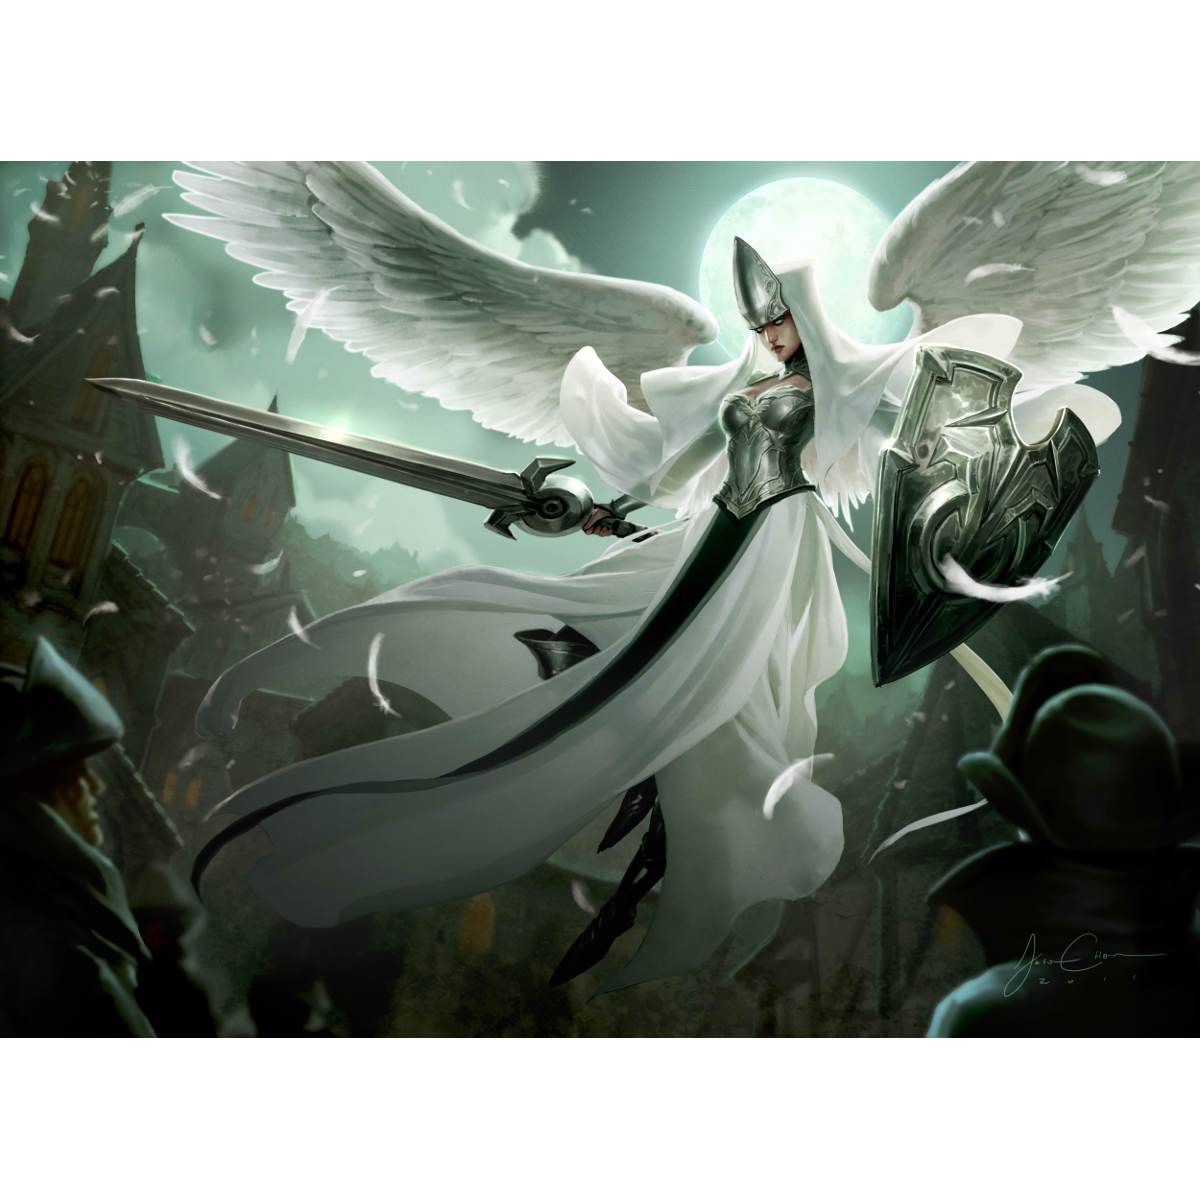 Angelic Overseer Print - Print - Original Magic Art - Accessories for Magic the Gathering and other card games